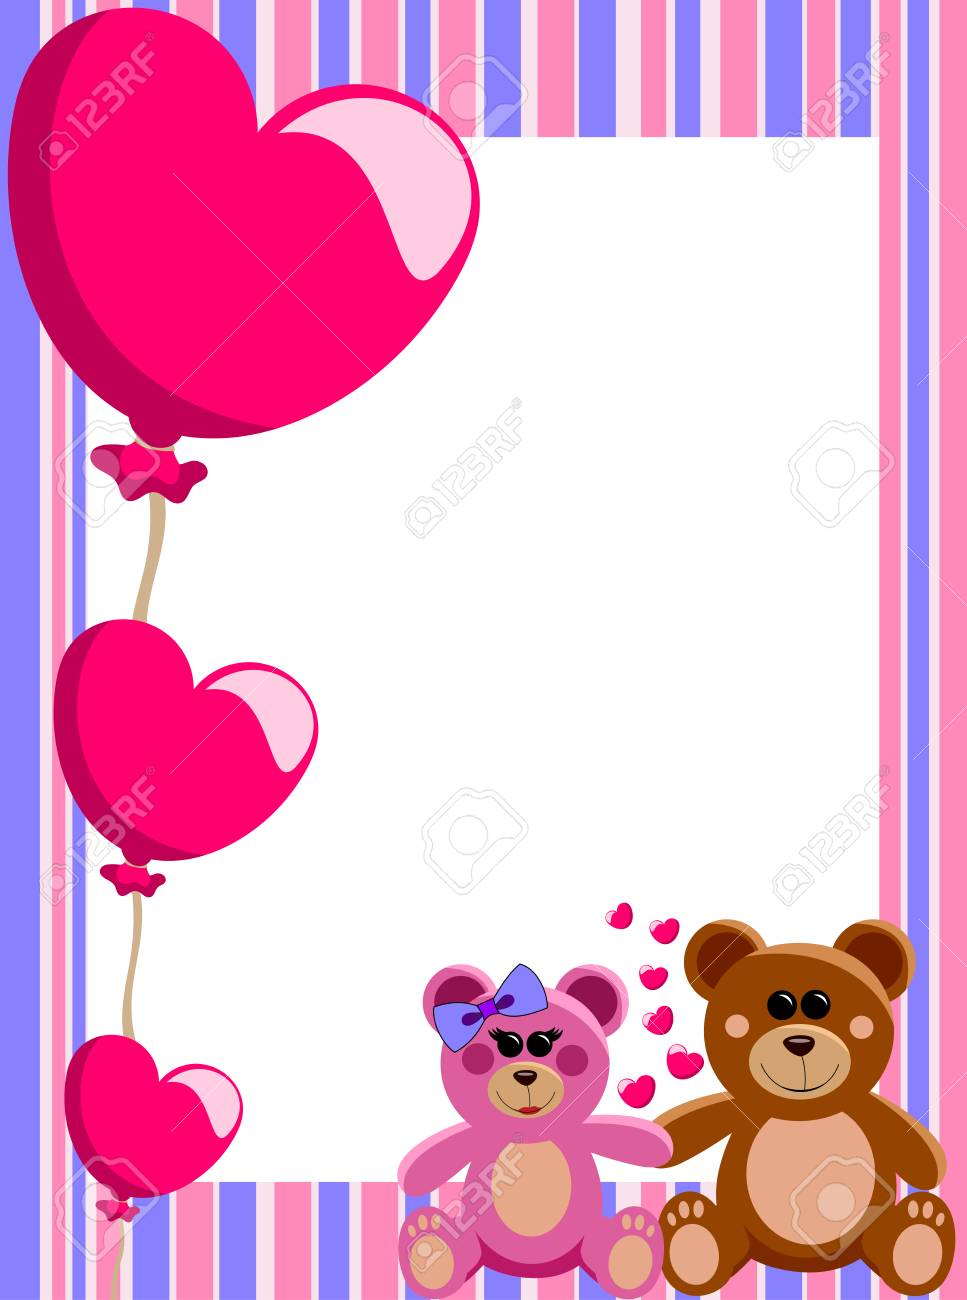 Decorative Valentine Love Frame Or Border With A Couple Of Teddy ...